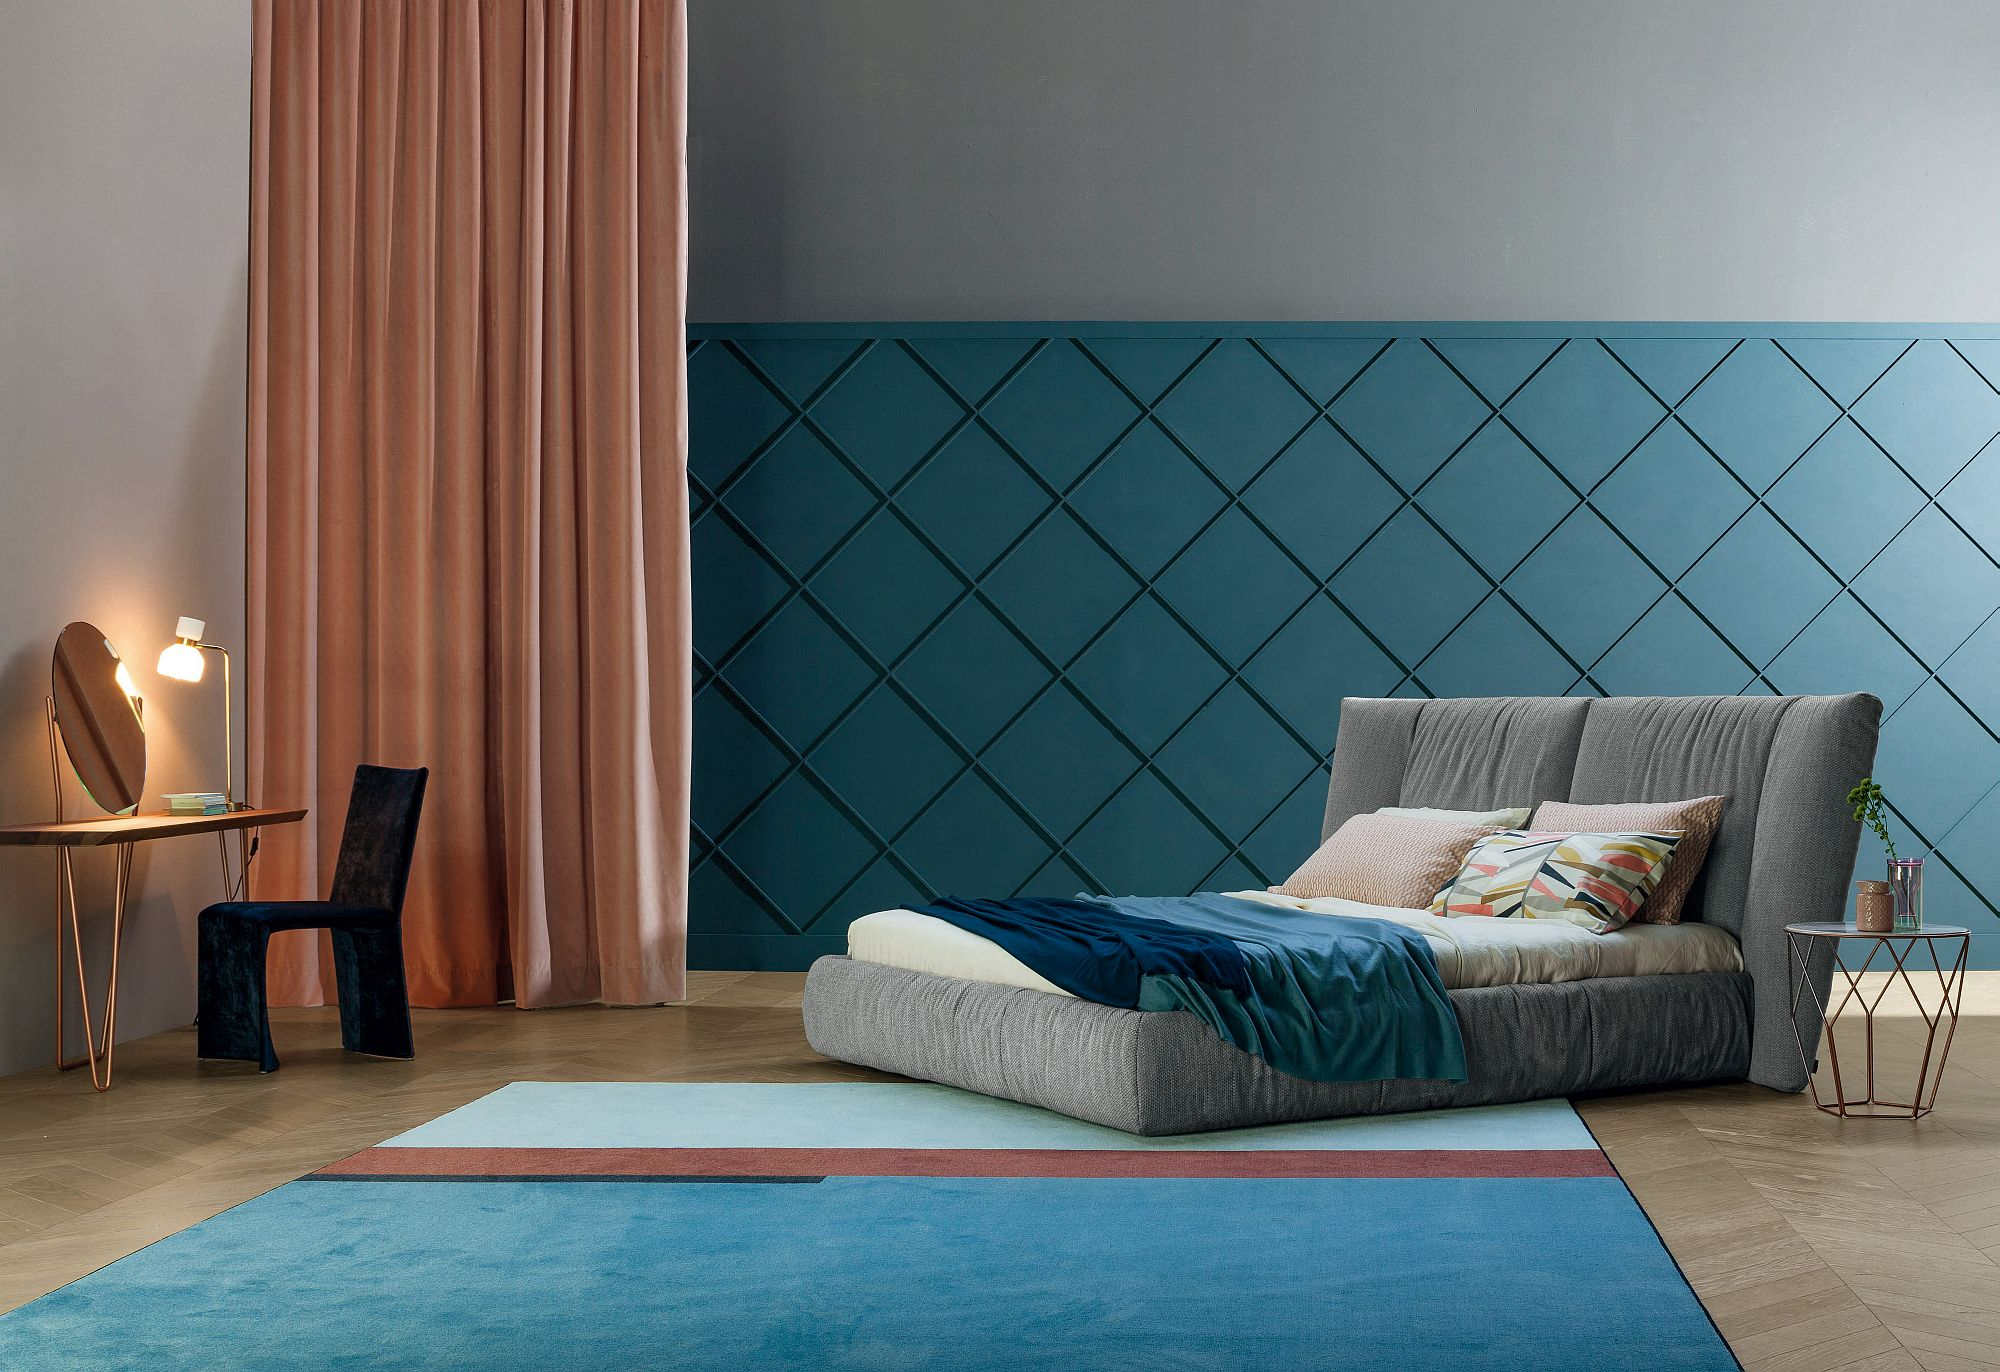 Cozy bed creates a comfortable cocoon effect